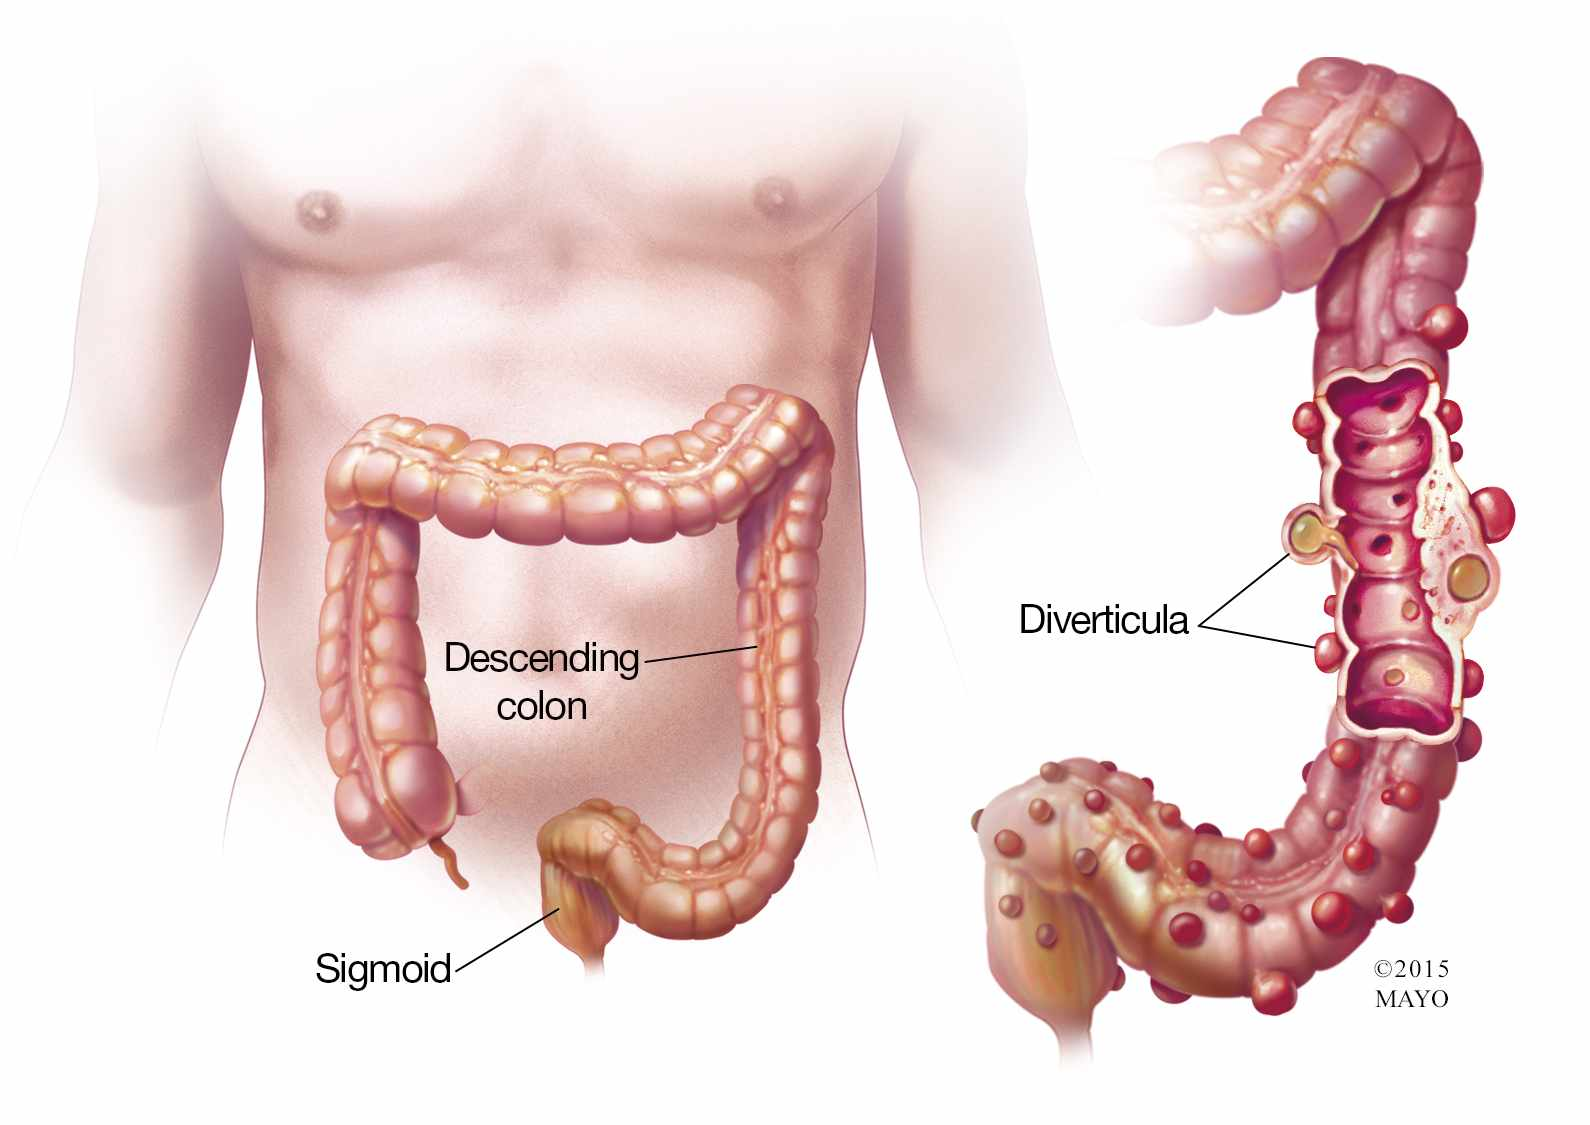 hight resolution of  illustration of colon with diverticula diverticulitis